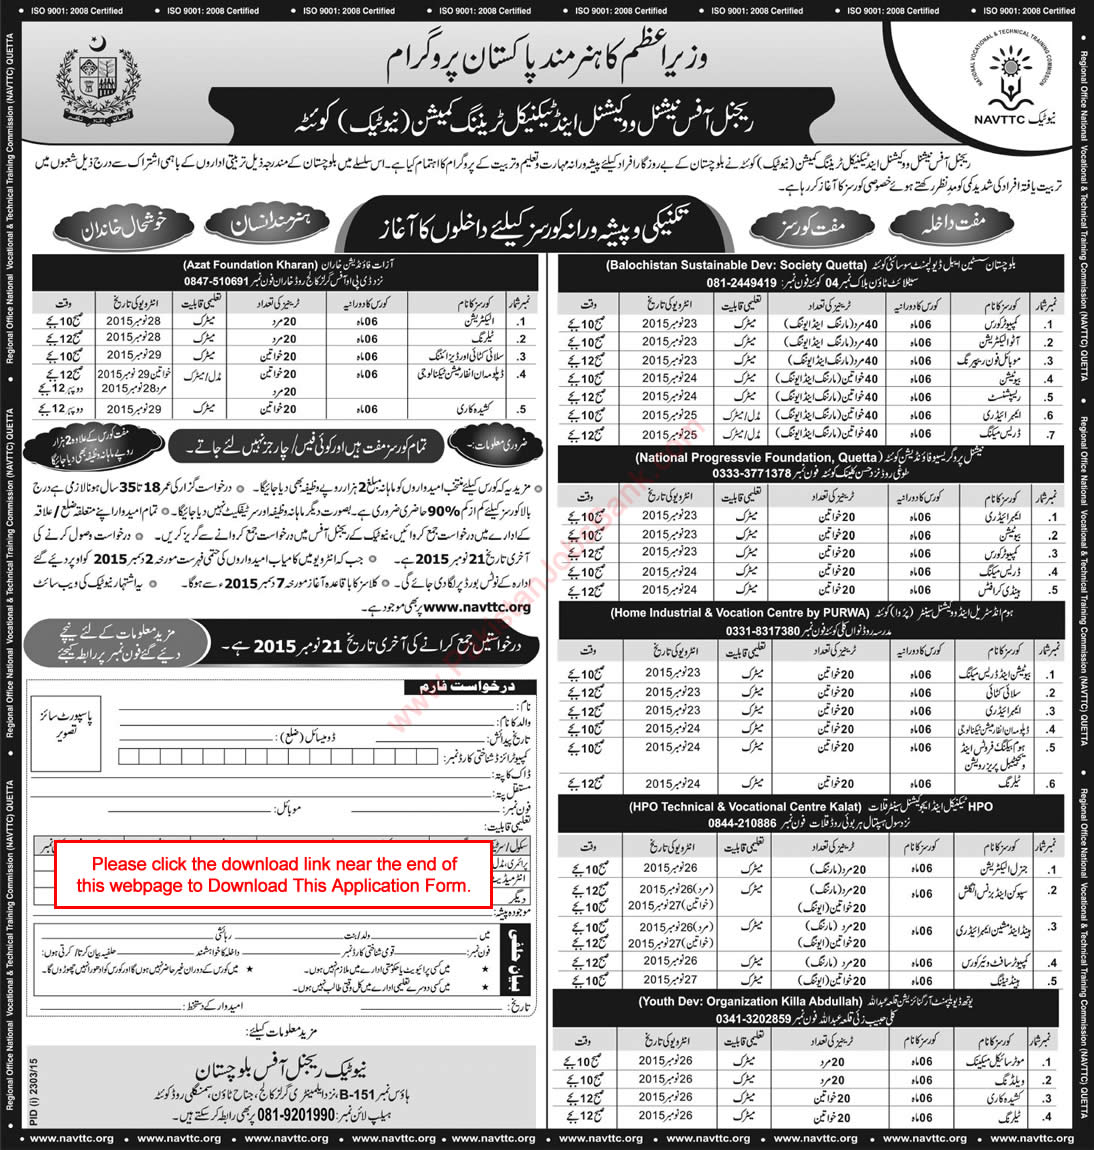 navttc free courses in balochistan 2015 november pm